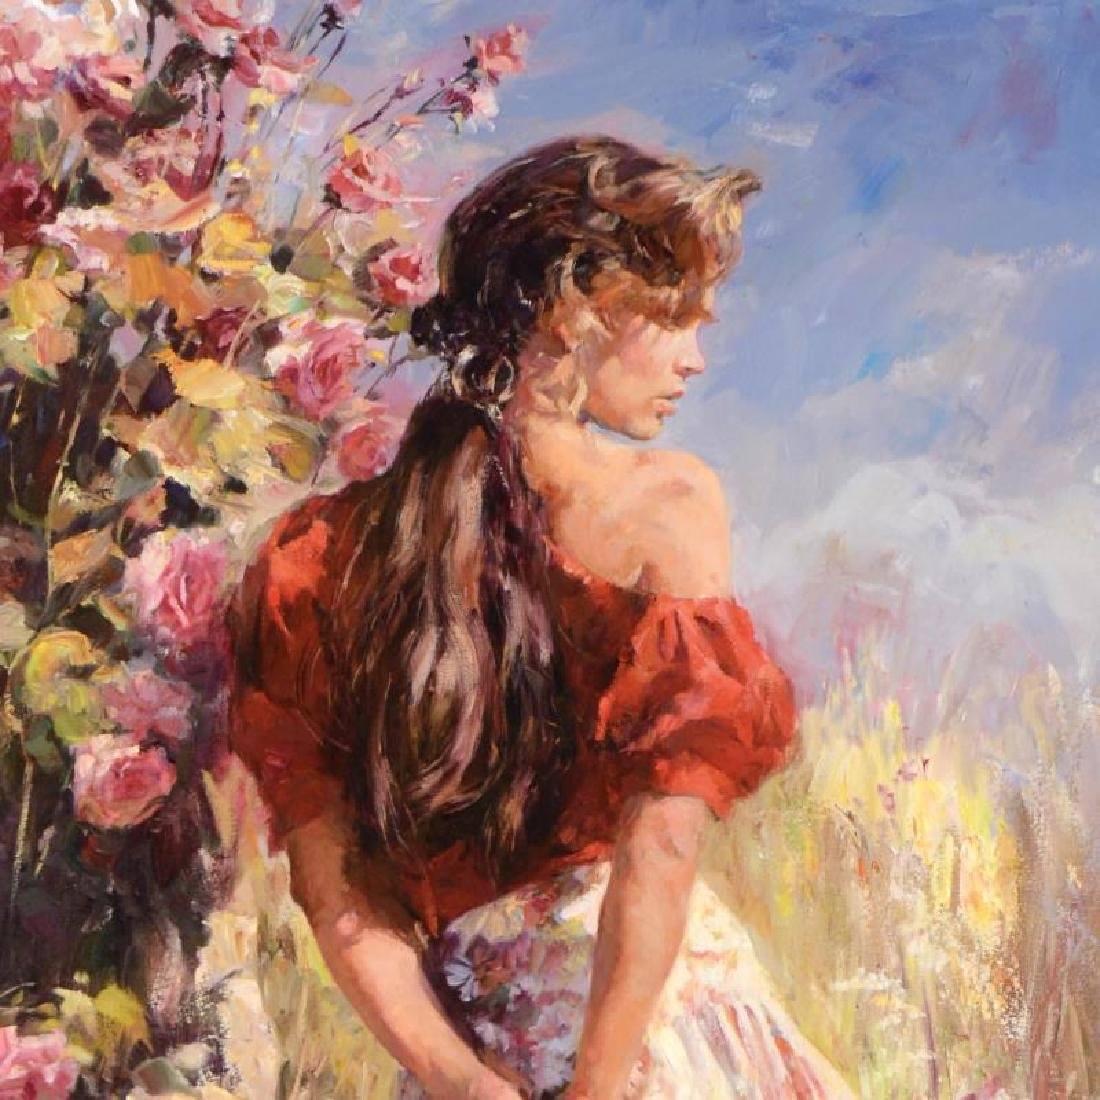 Cherished Roses by Garmash - 2